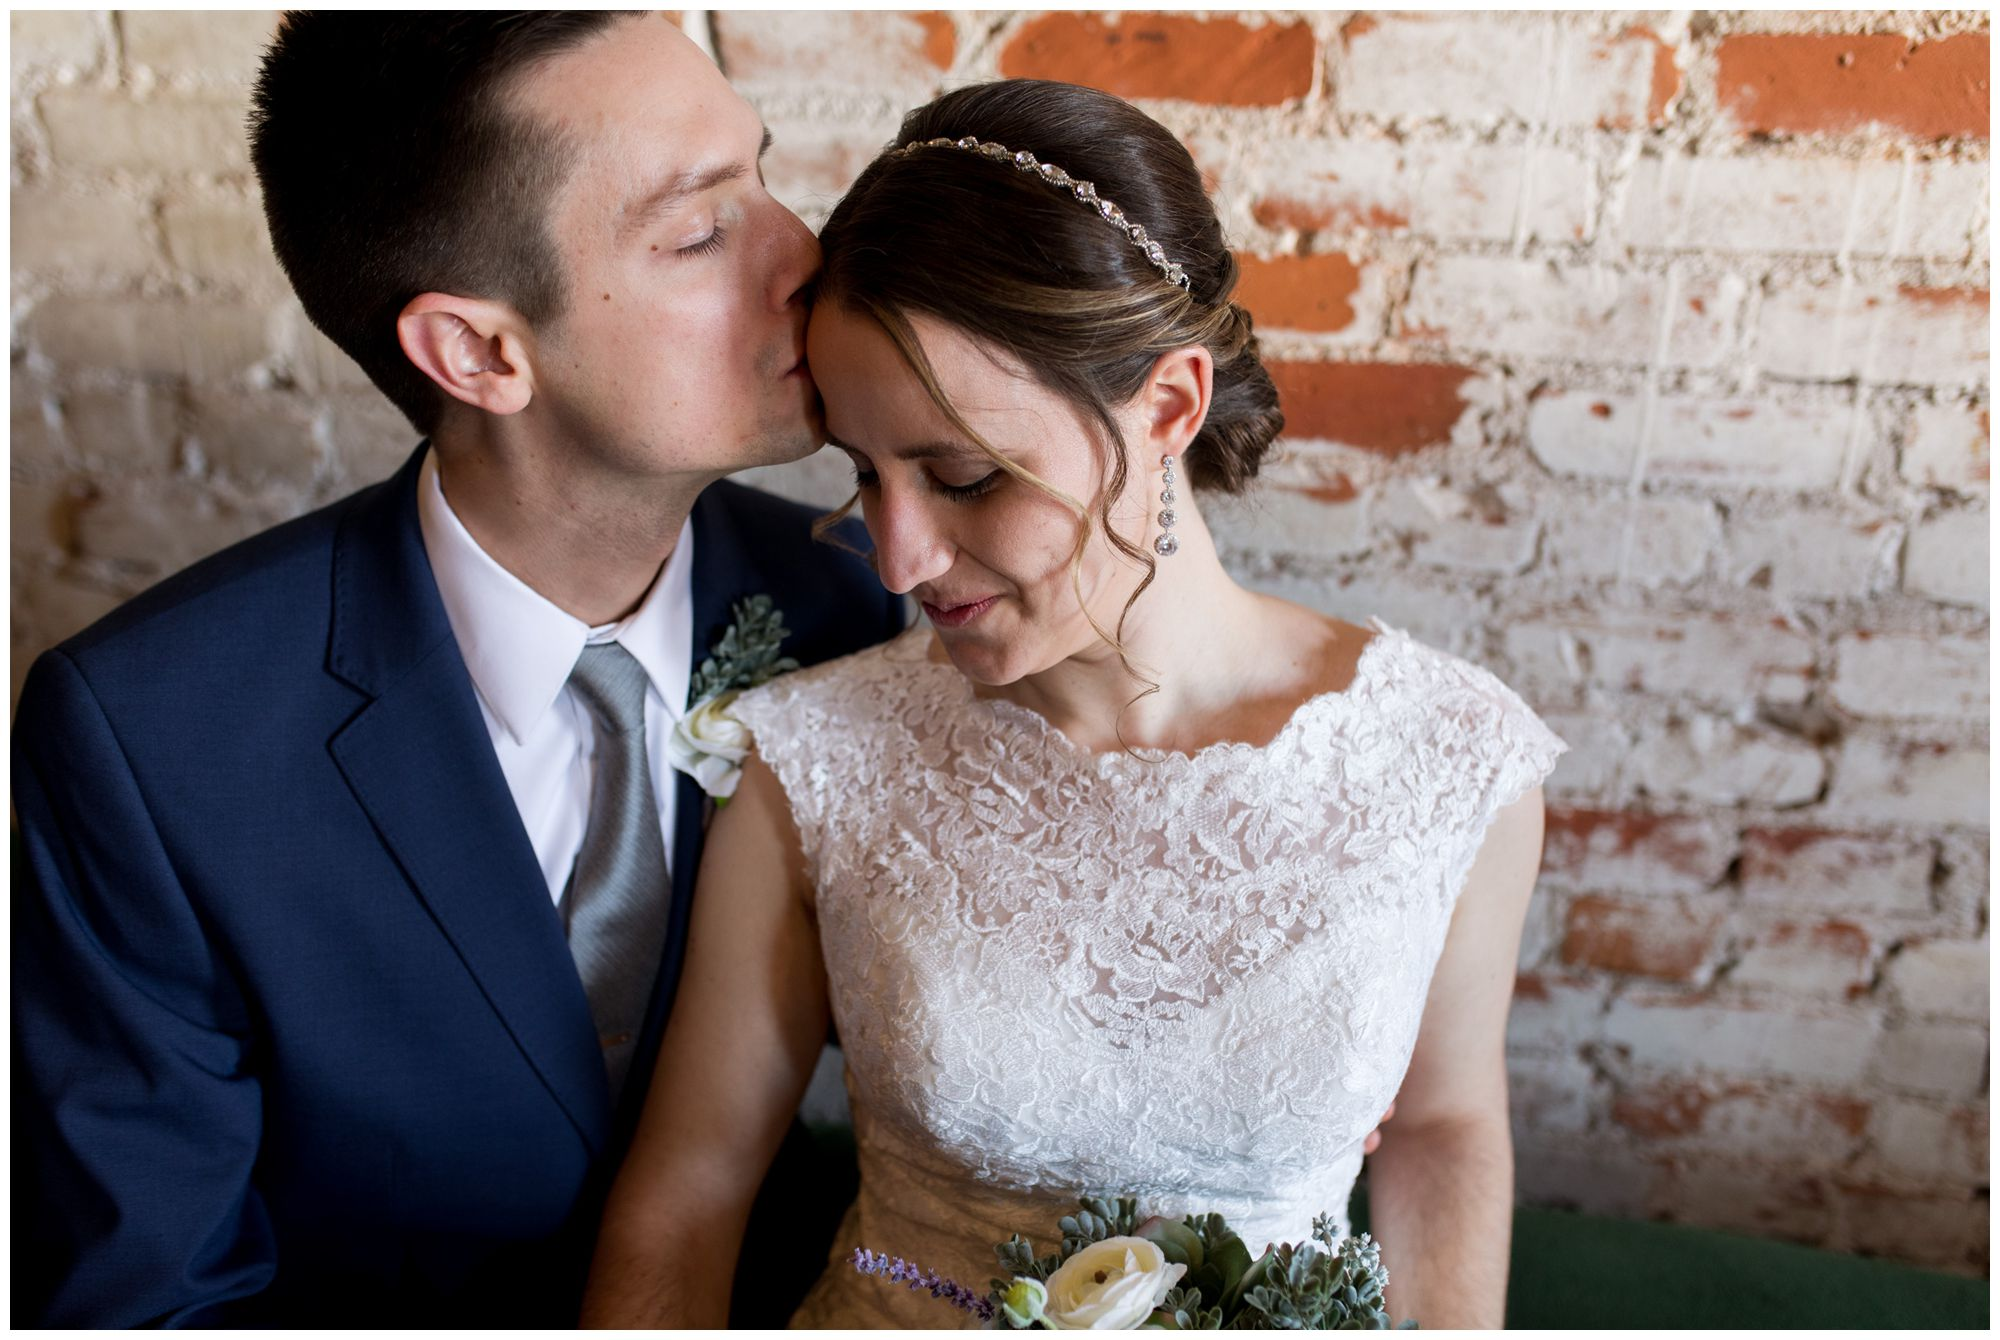 Bread & Chocolate bride and groom portraits in Goshen Indiana